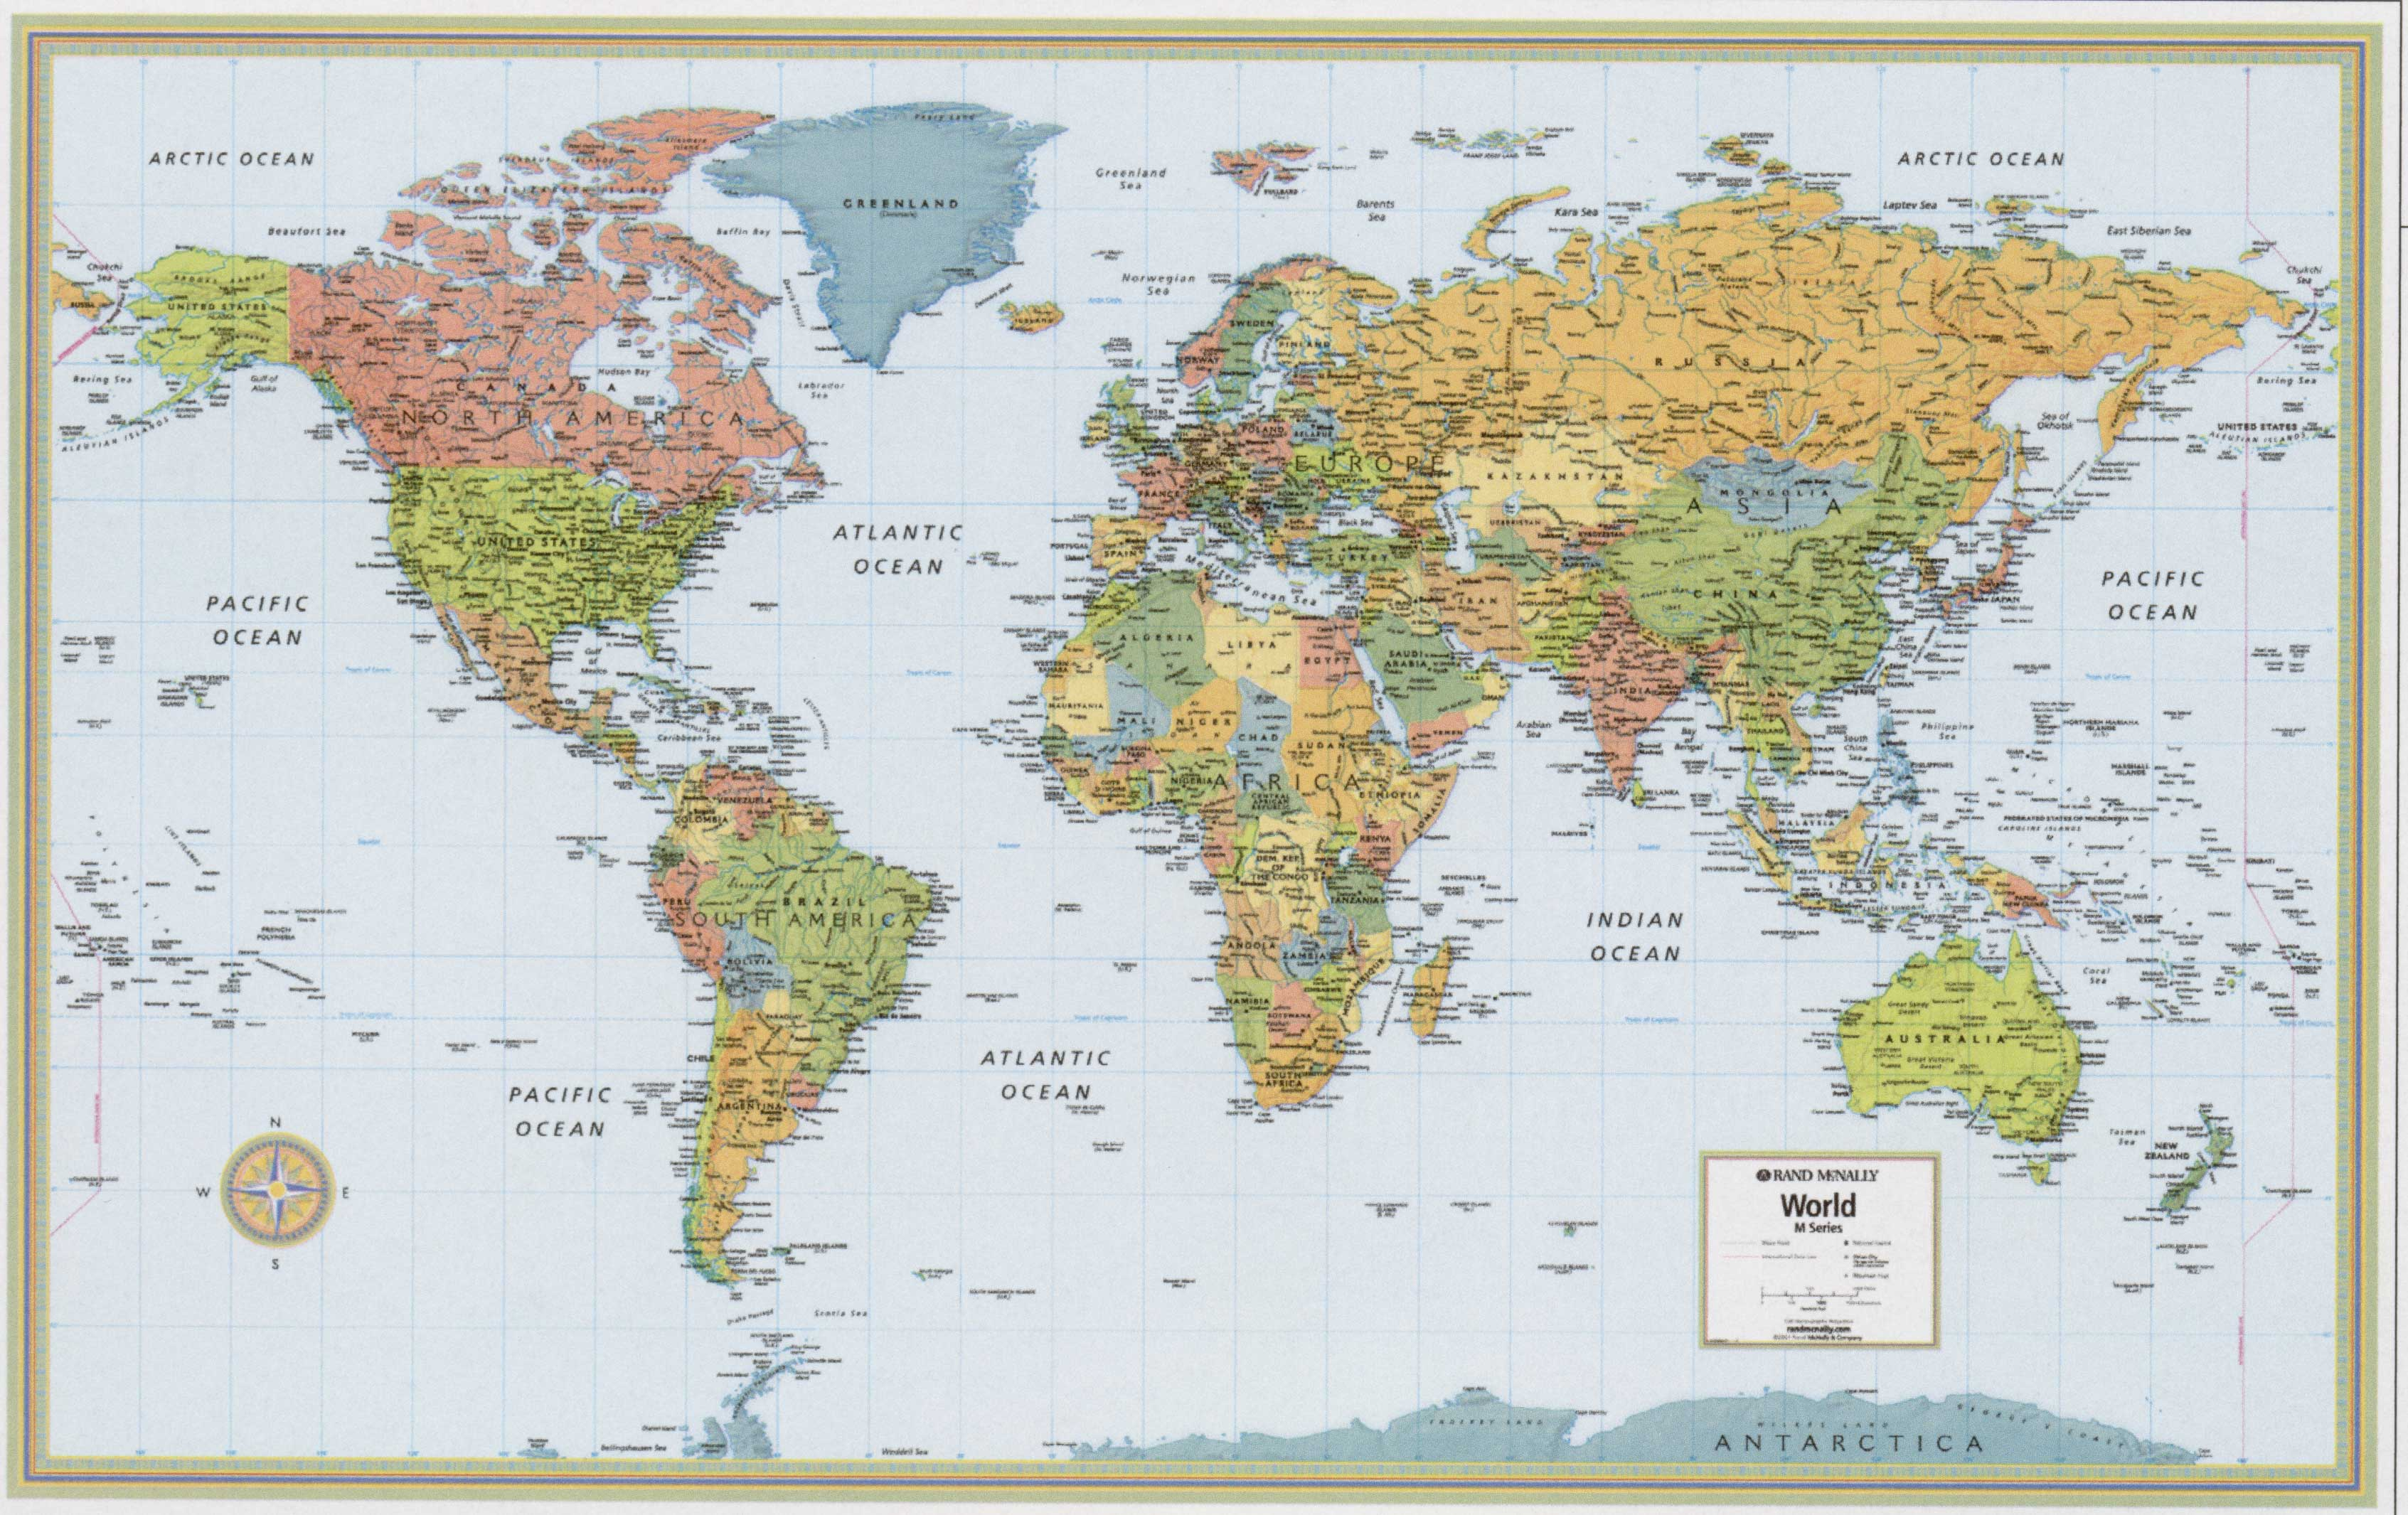 World Map Small Rand Laminated Free Maps Globe Globes Geo - Map of states us